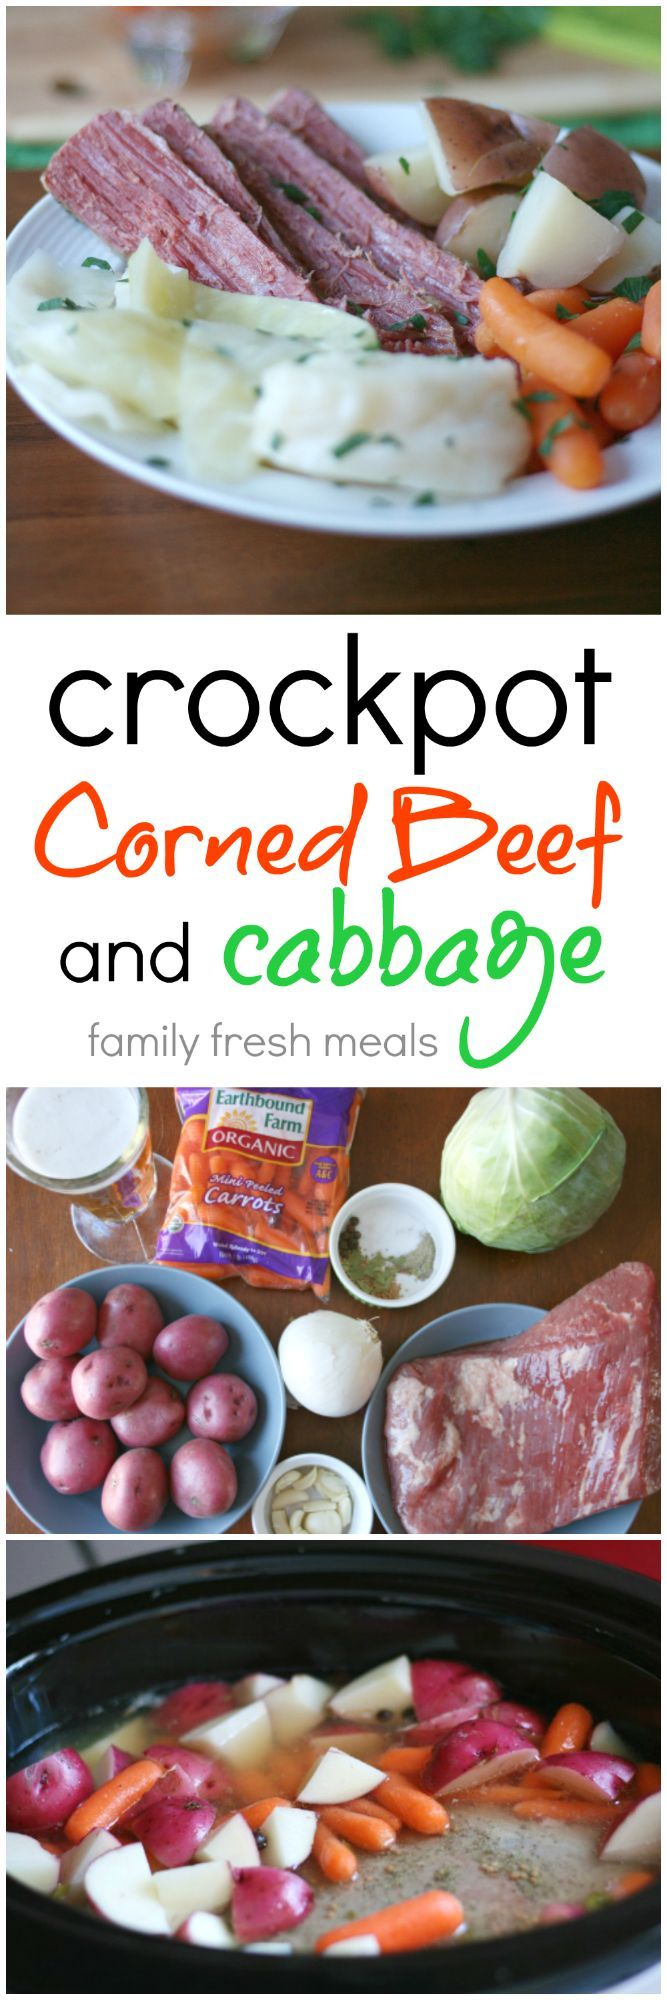 Crockpot Corned Beef and Cabbage Recipe - Never made corned beef and cabbage? Don't worry, this recipe is goof-proof! FamilyFreshMeals.com